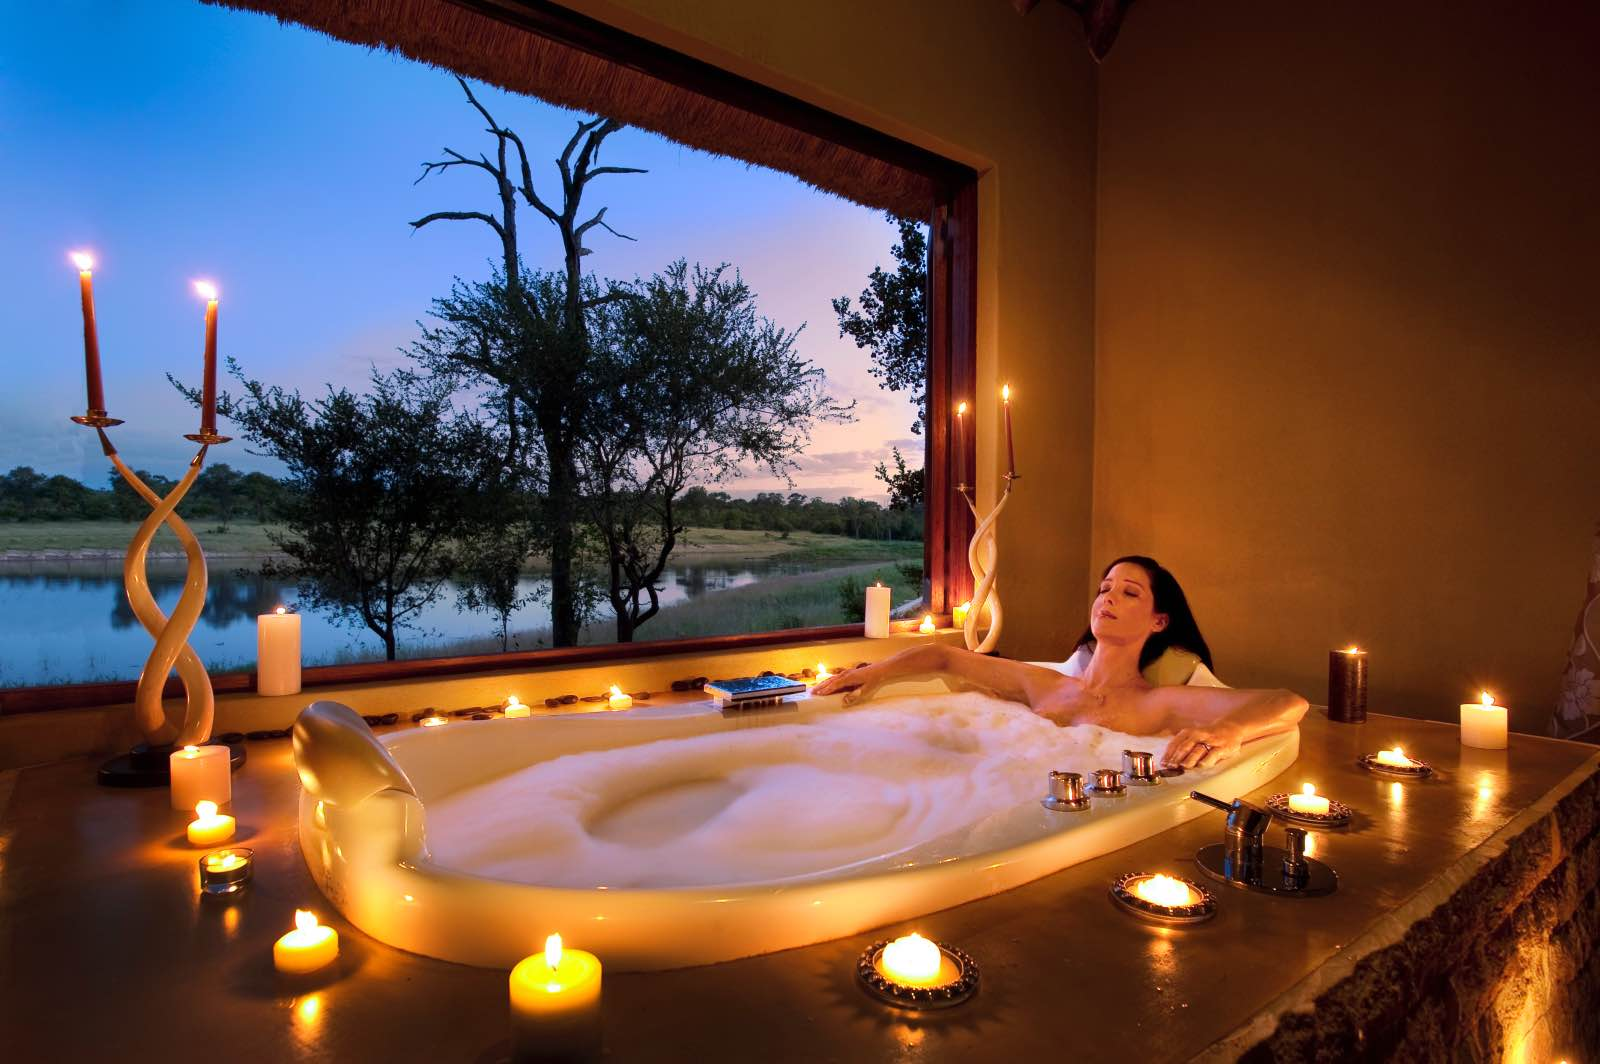 Candlelit bath with a view of the waterhole at Arathusa Safari Lodge spa